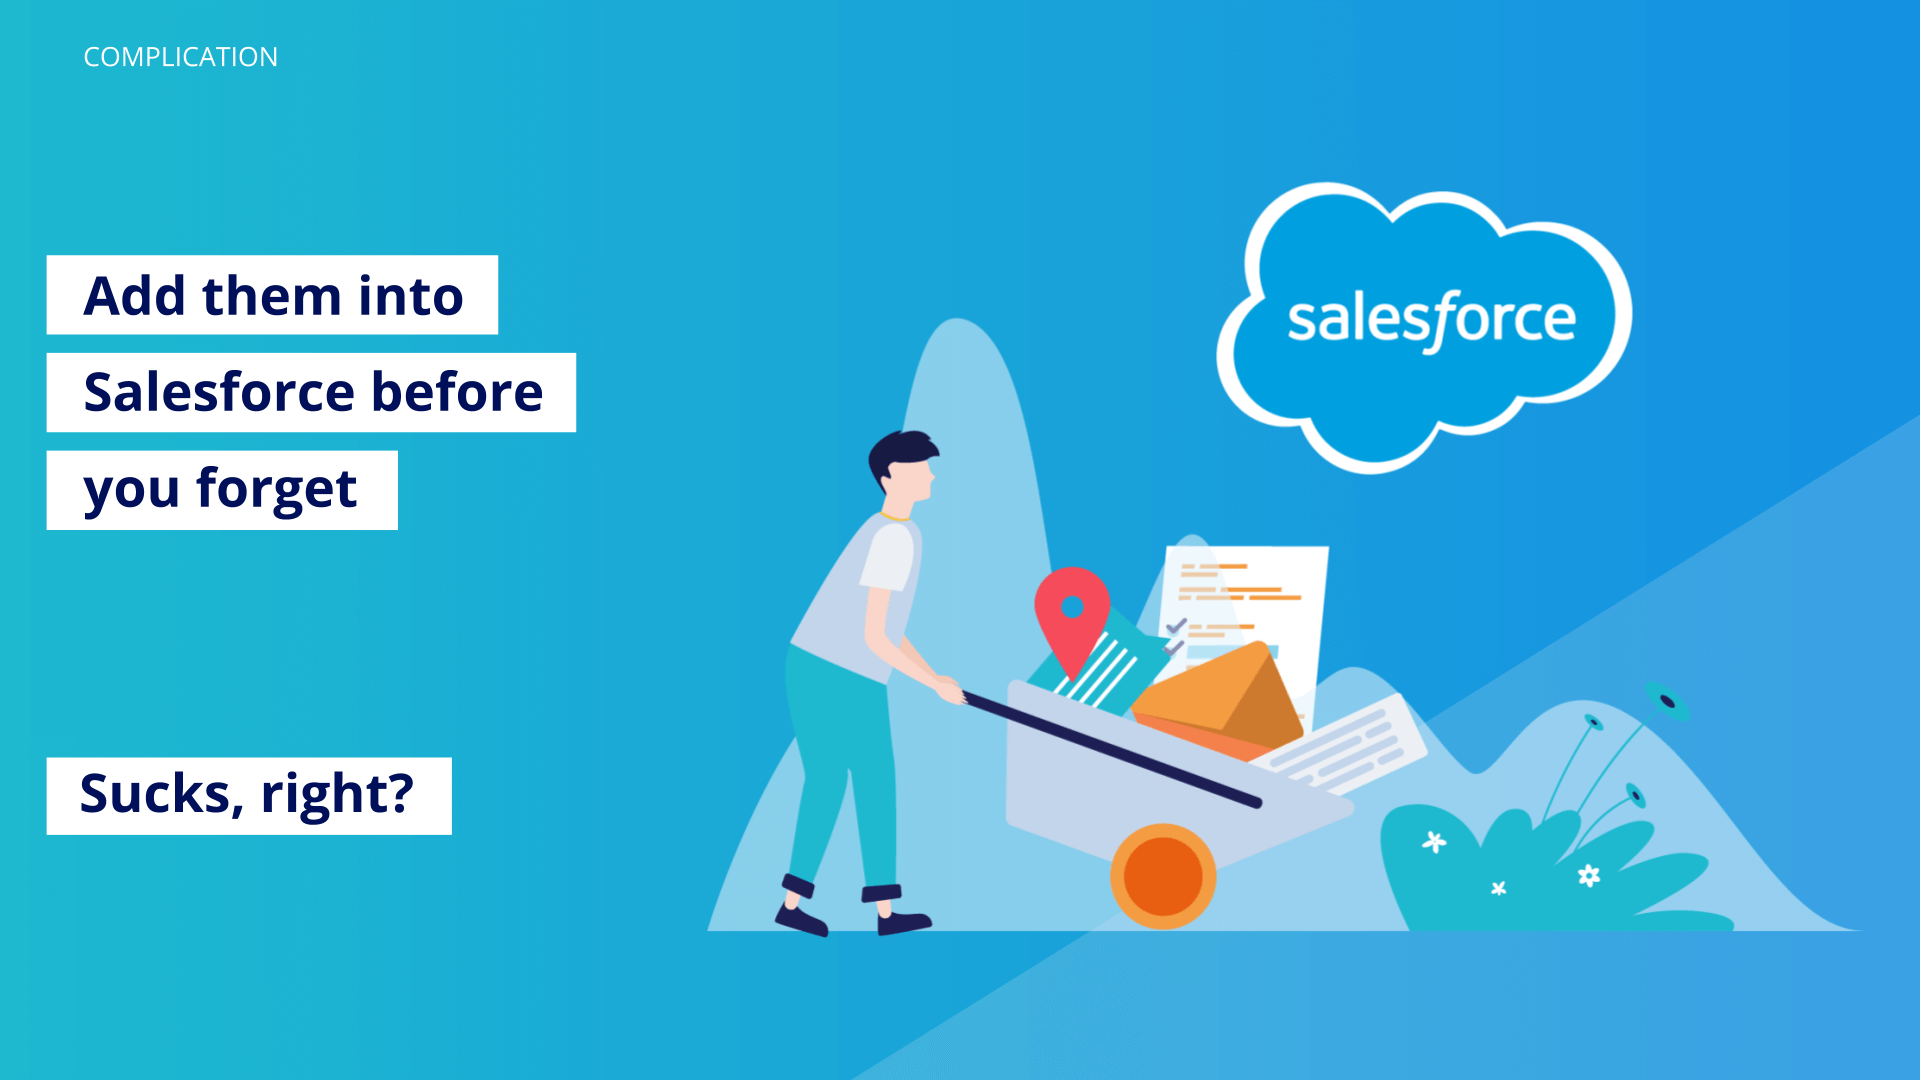 add-them-into-salesforce-before-you-forget